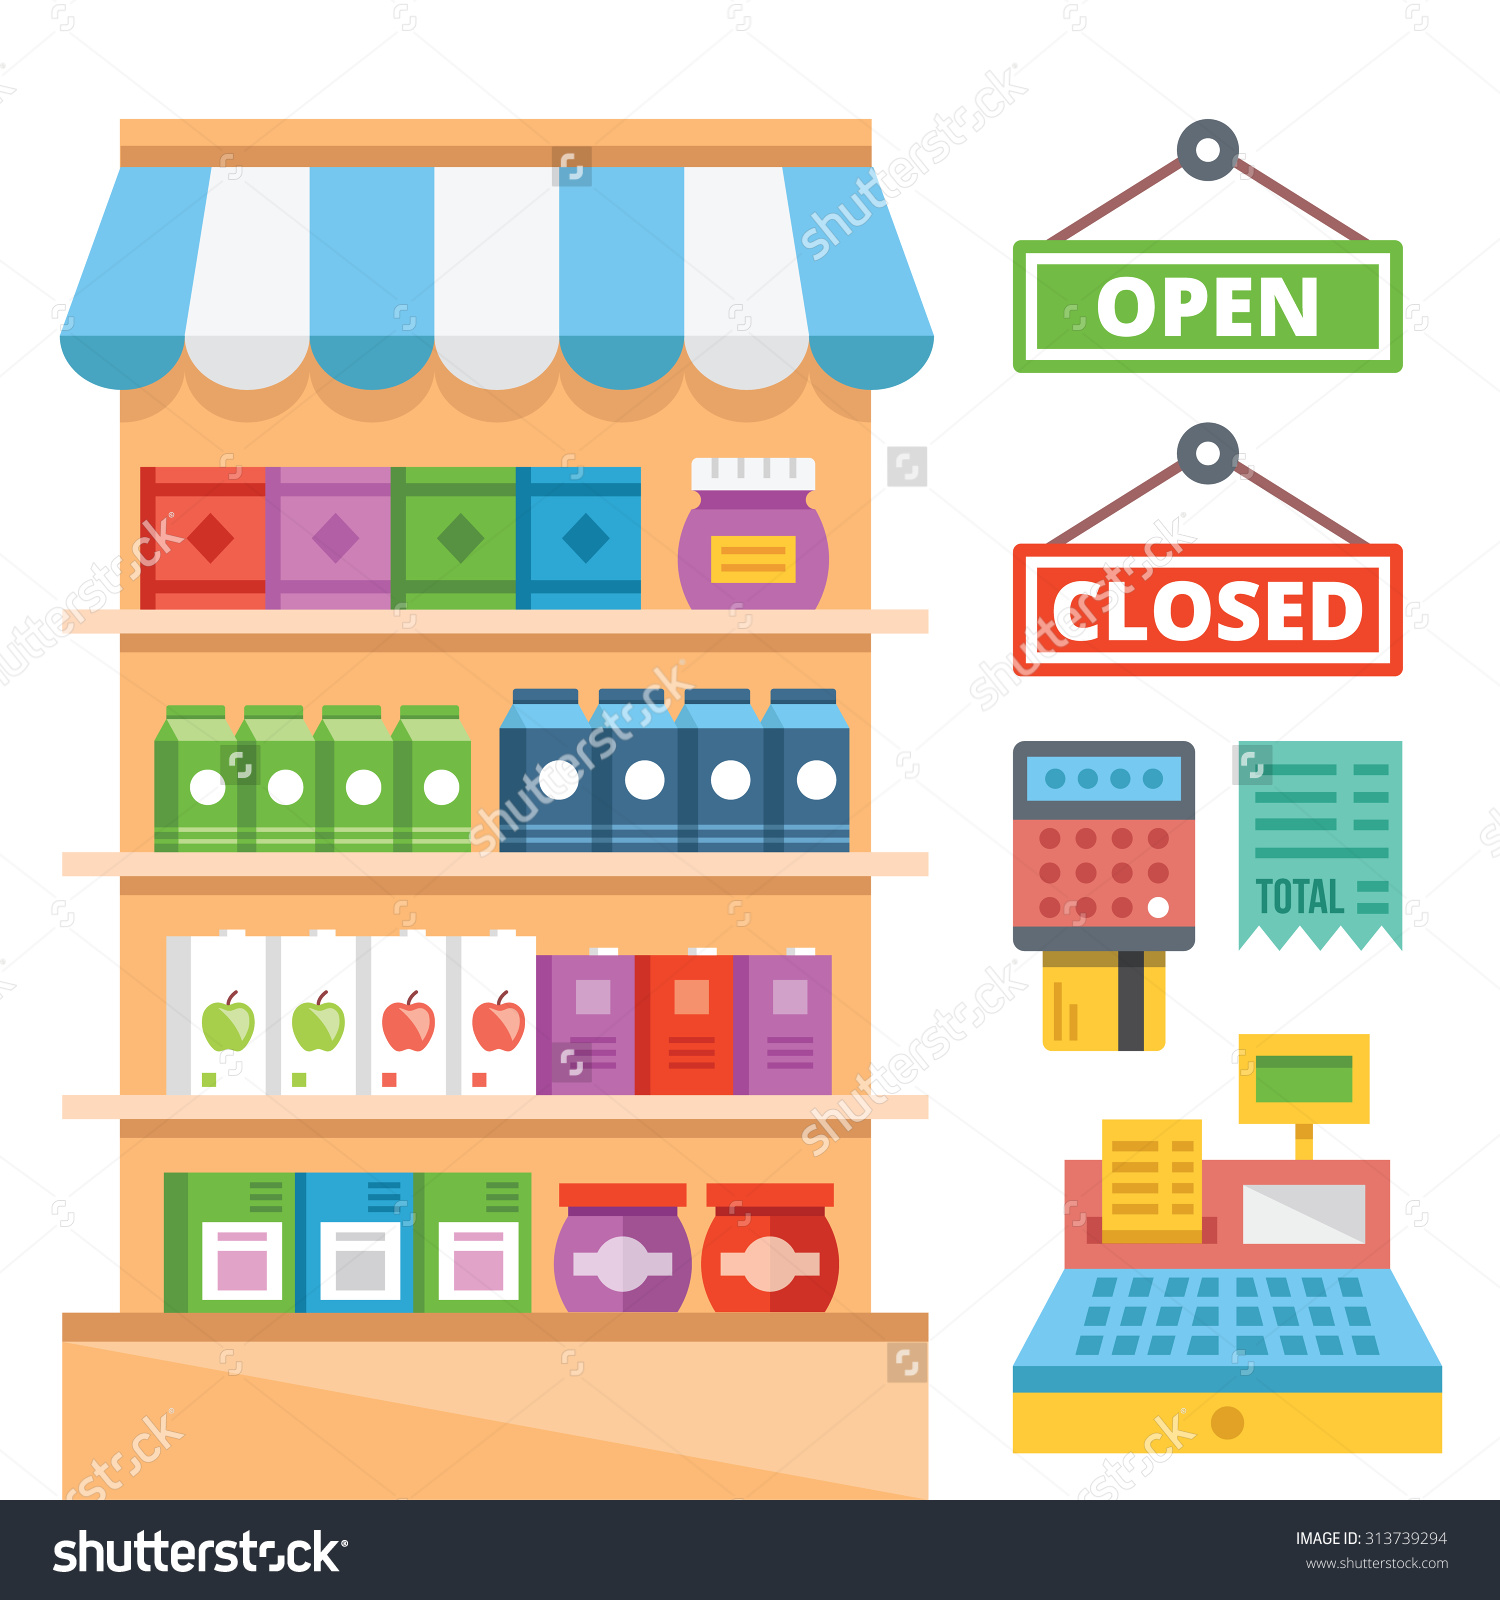 Supermarket Shelves General Store Equipment Flat Stock Vector.